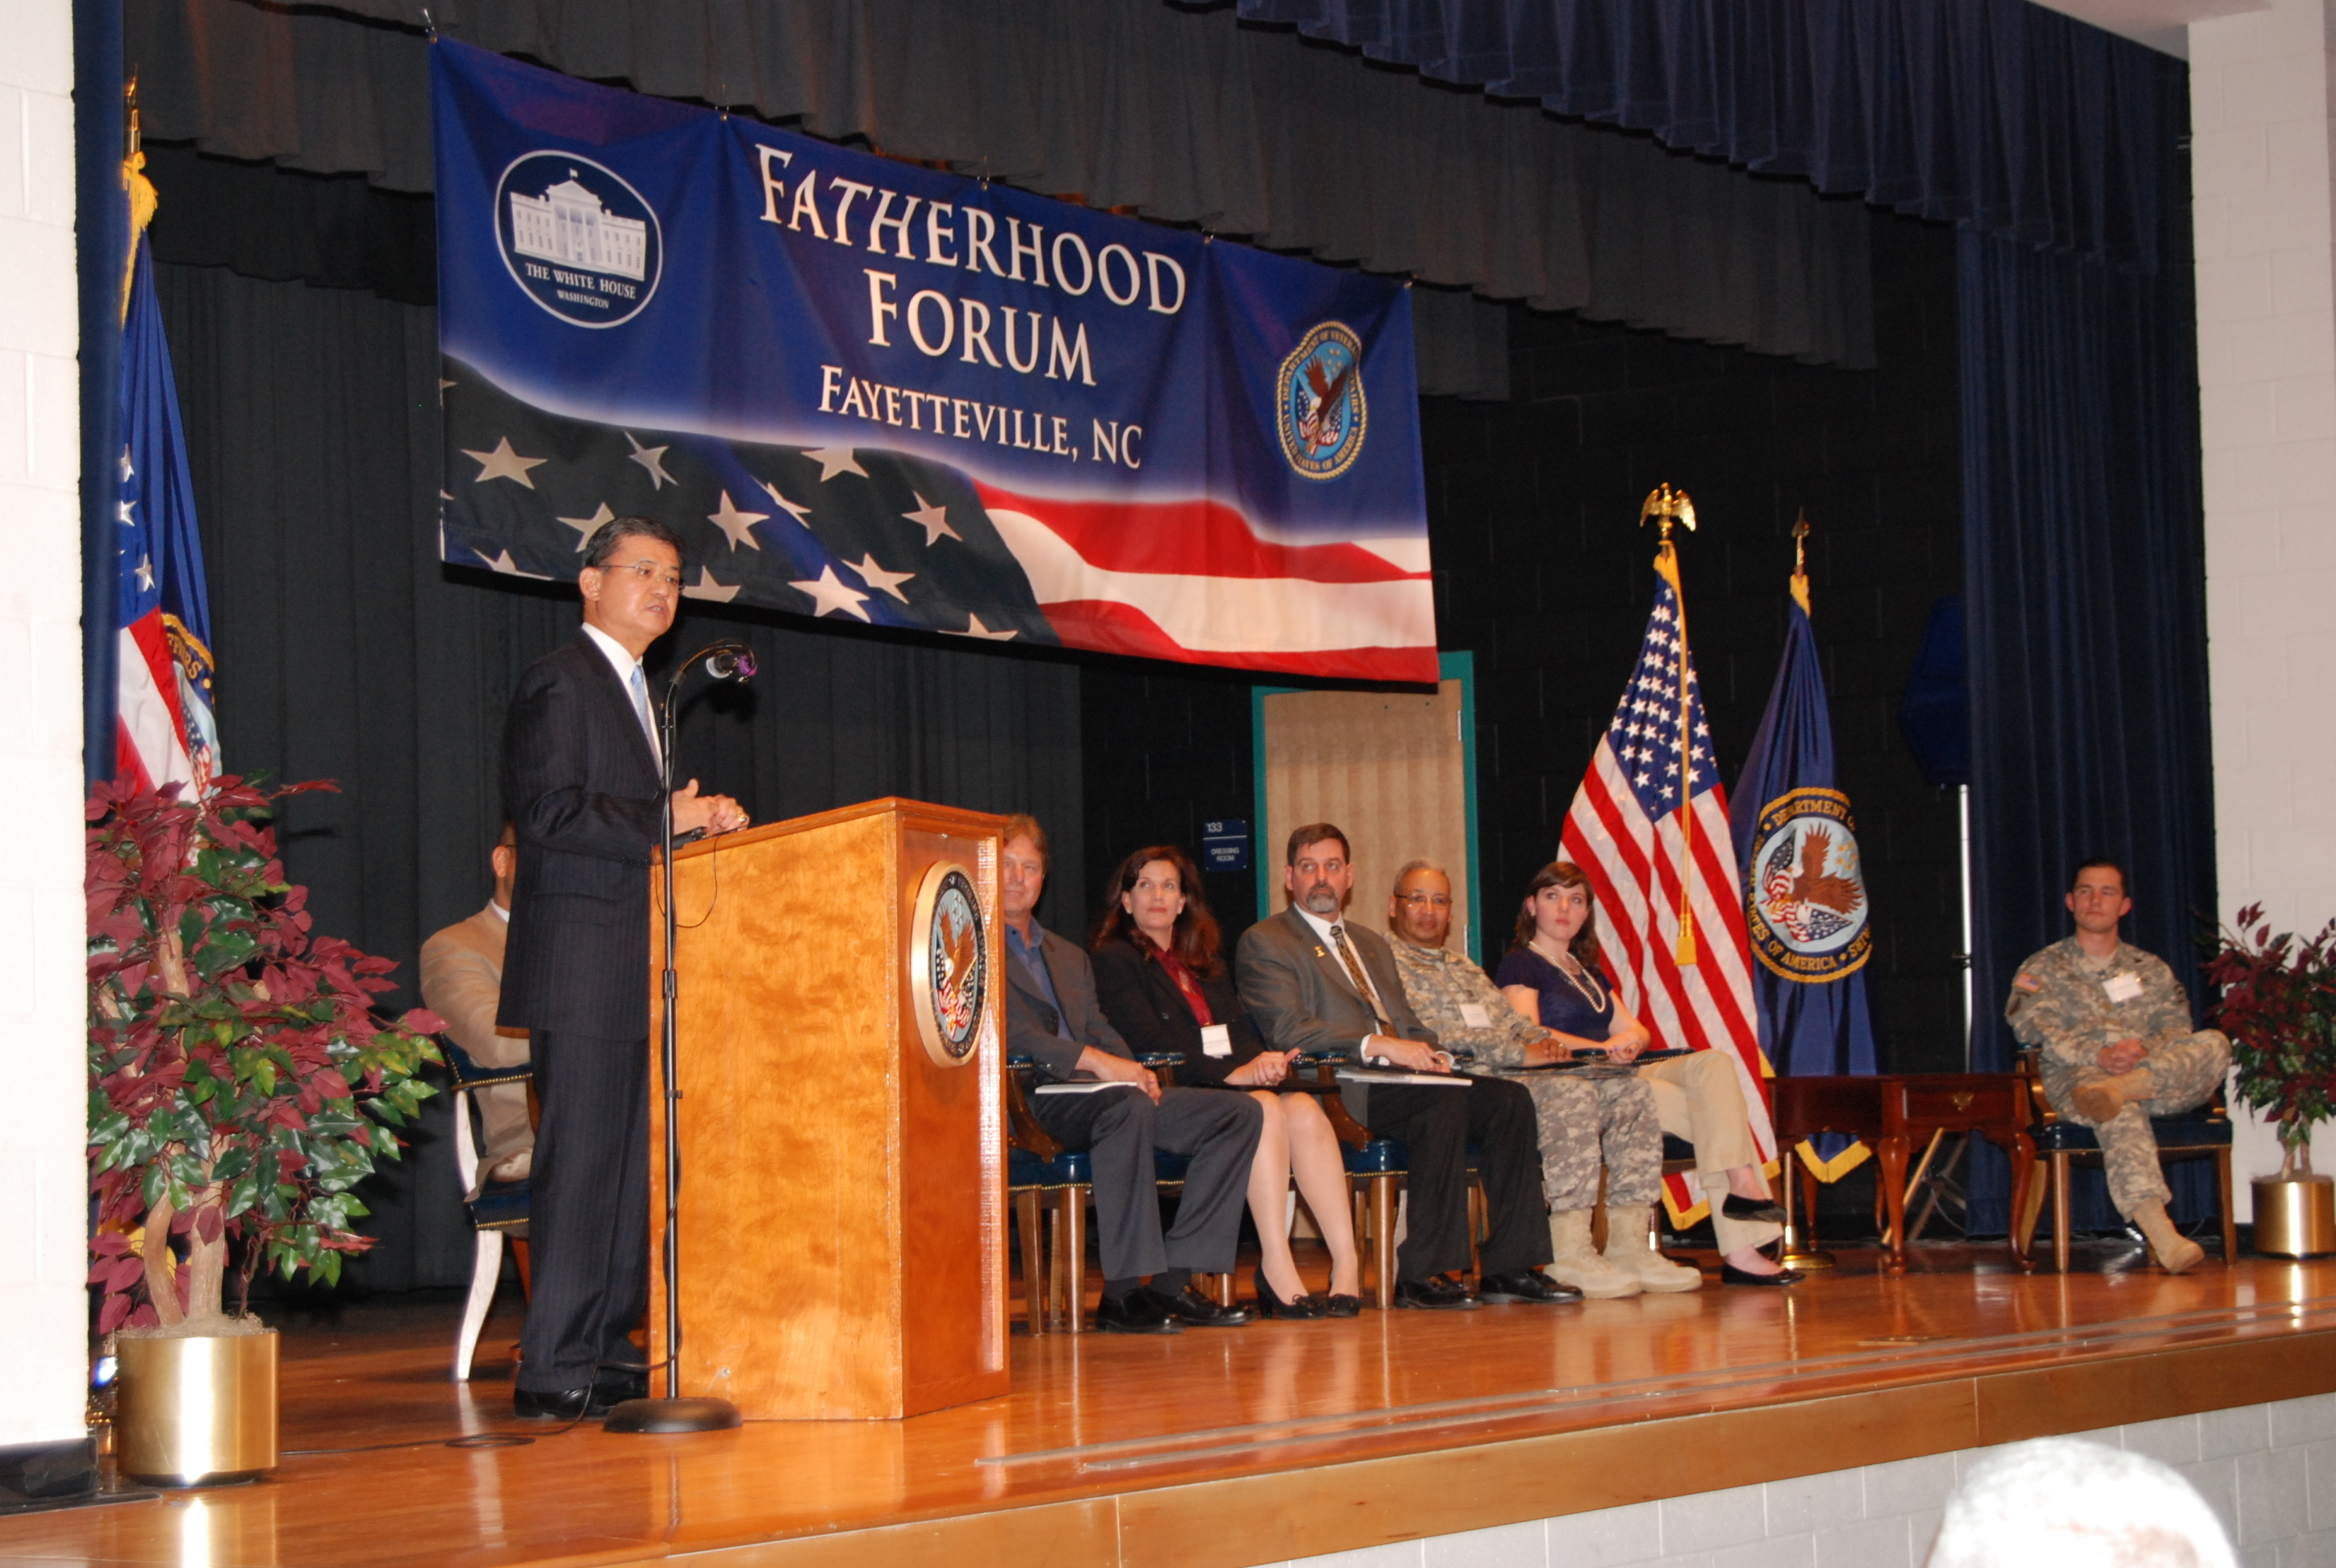 Secretary Shinseki Fatherhood Keynote